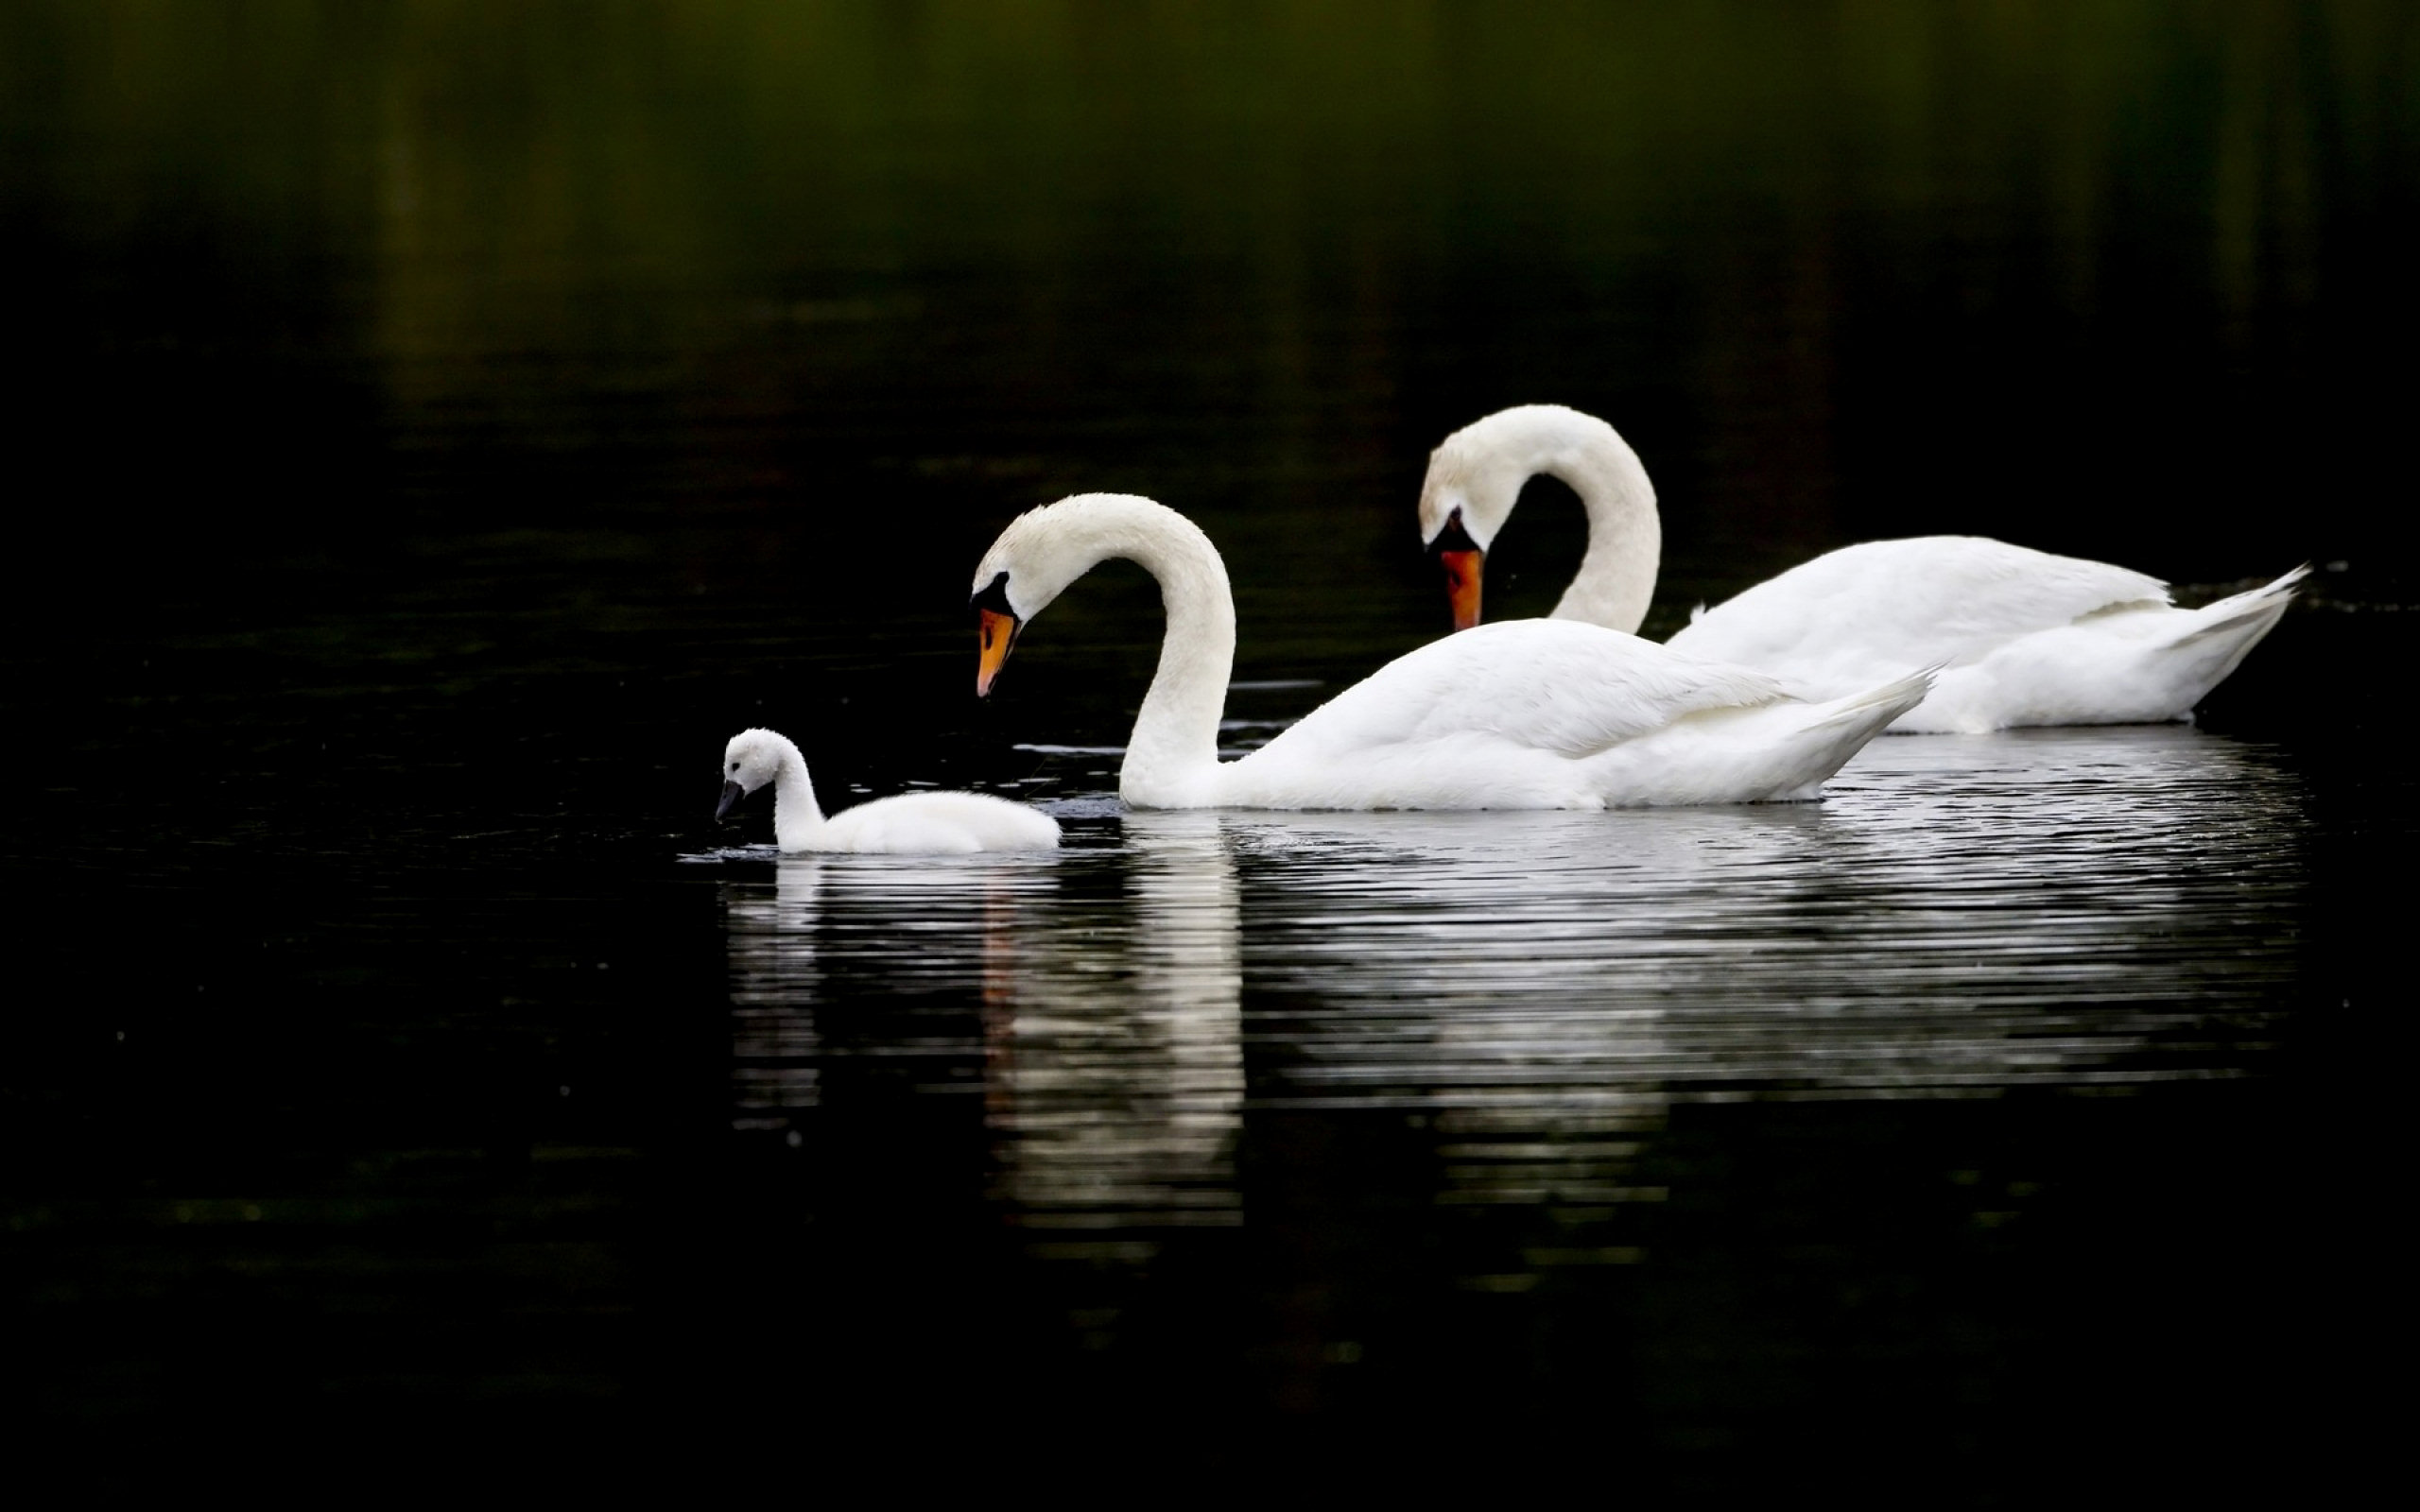 Swans Full HD Wallpaper and Background Image | 2560x1600 ...